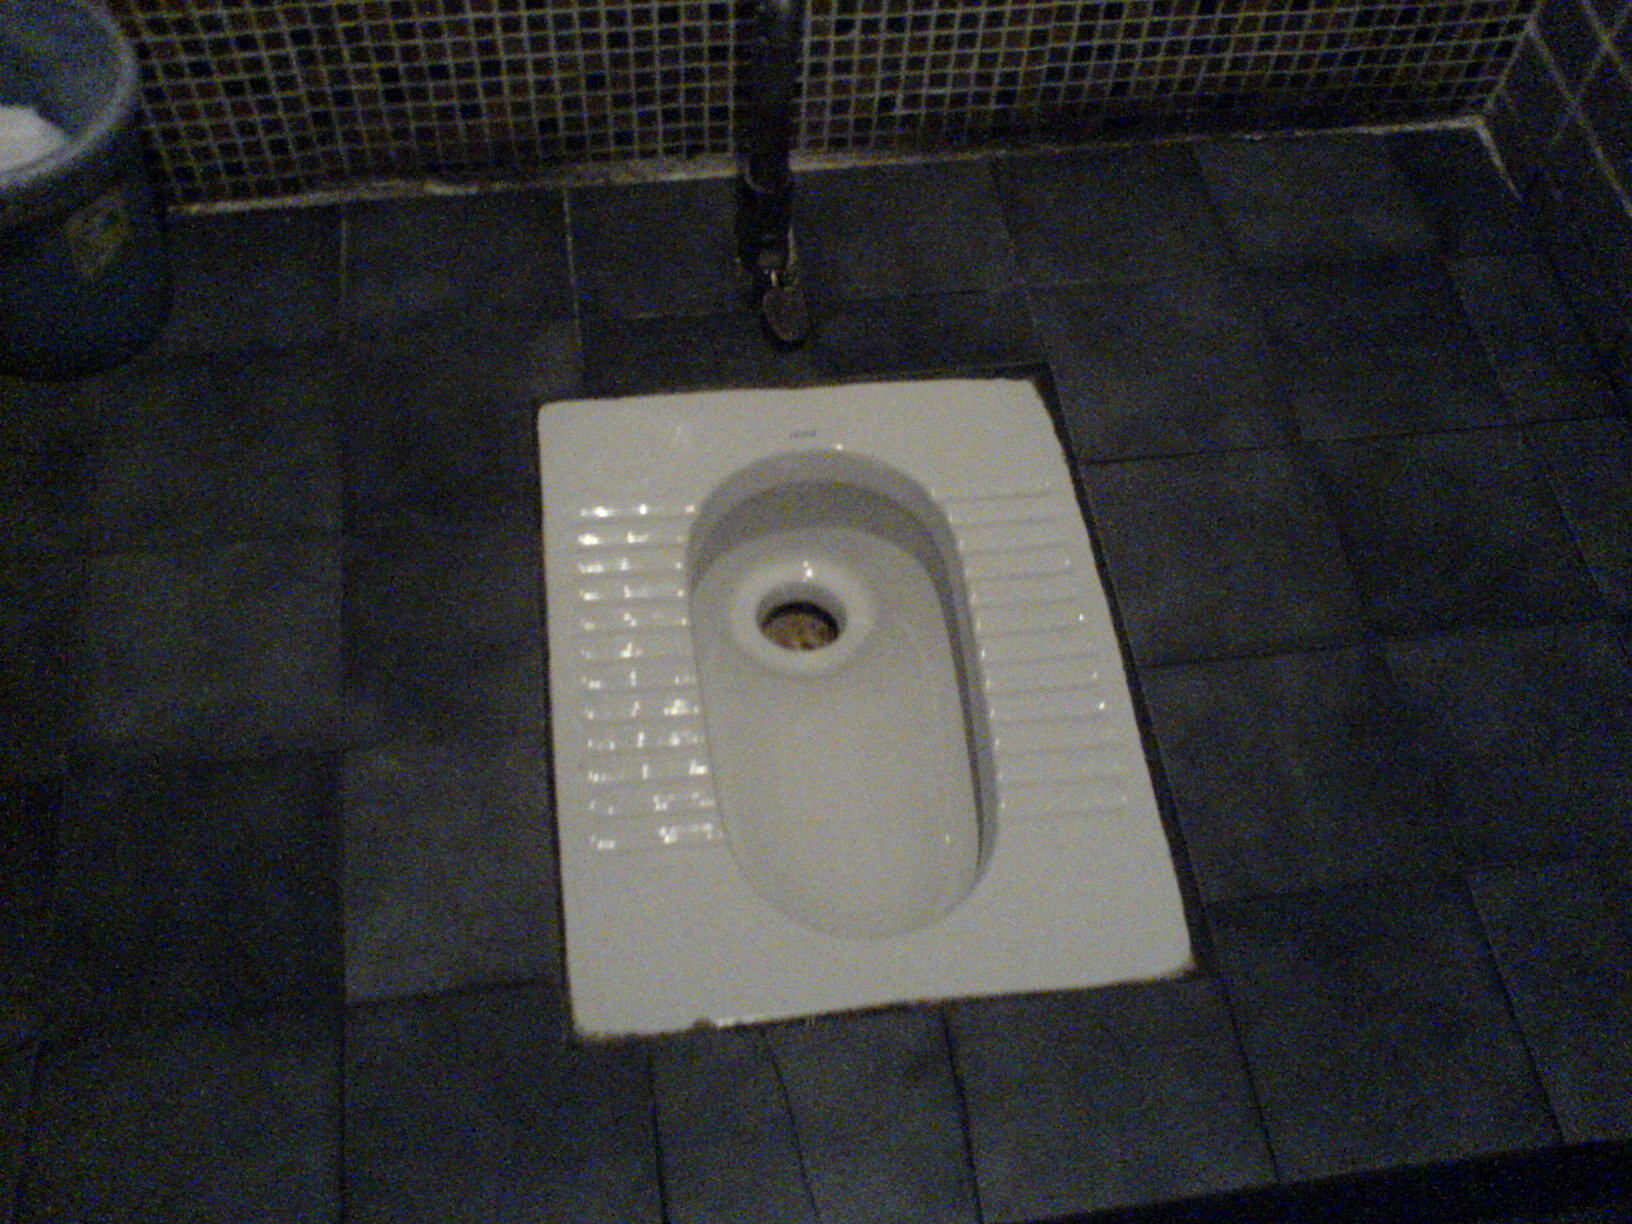 To Pee or Not To Pee